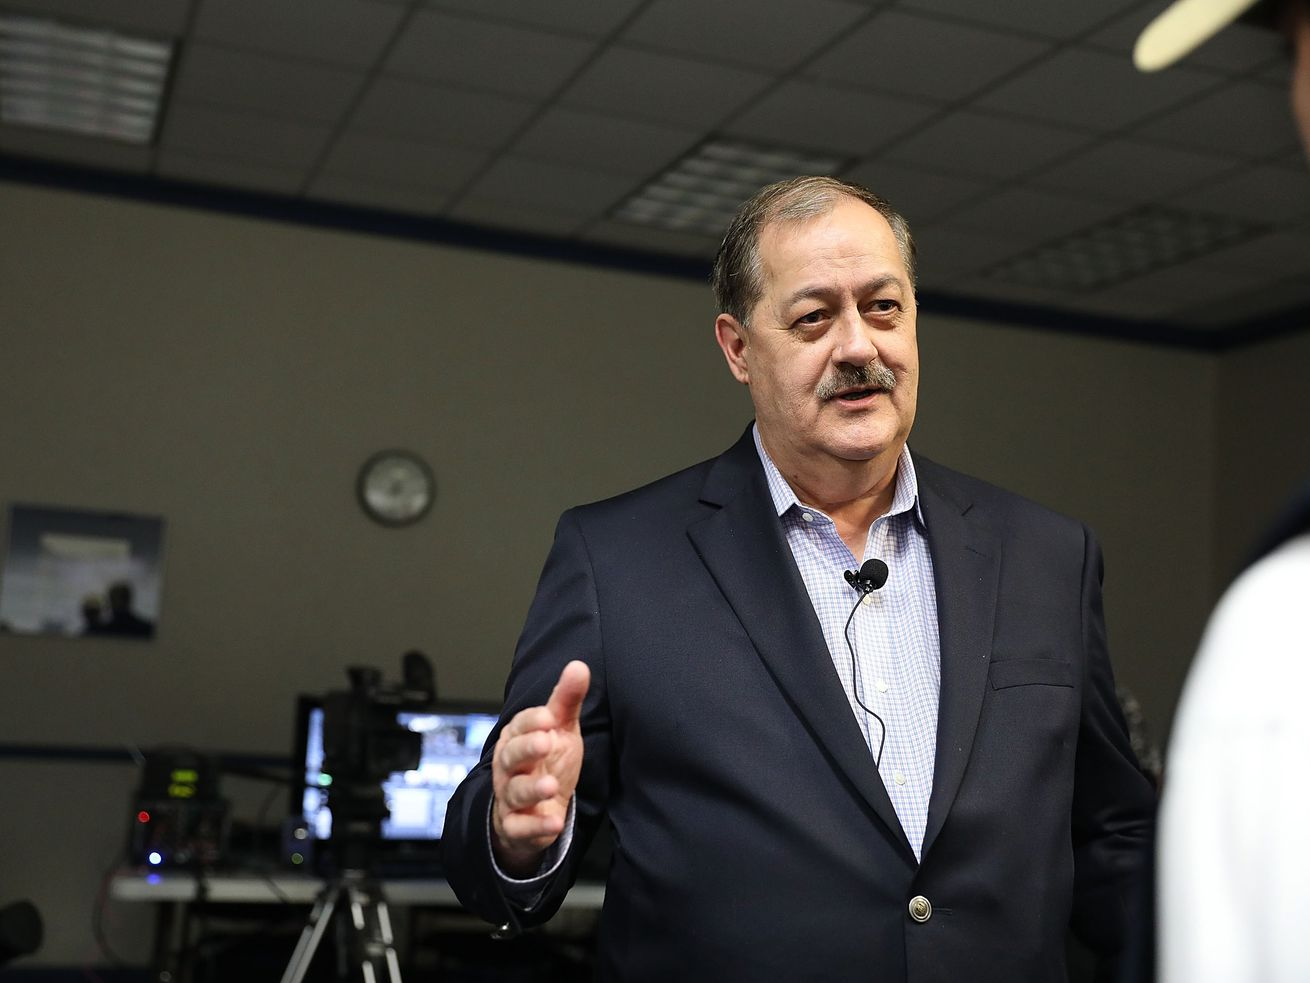 Don Blankenshp, the former coal boss, threw a wrench in the 2018 West Virginia Senate race.